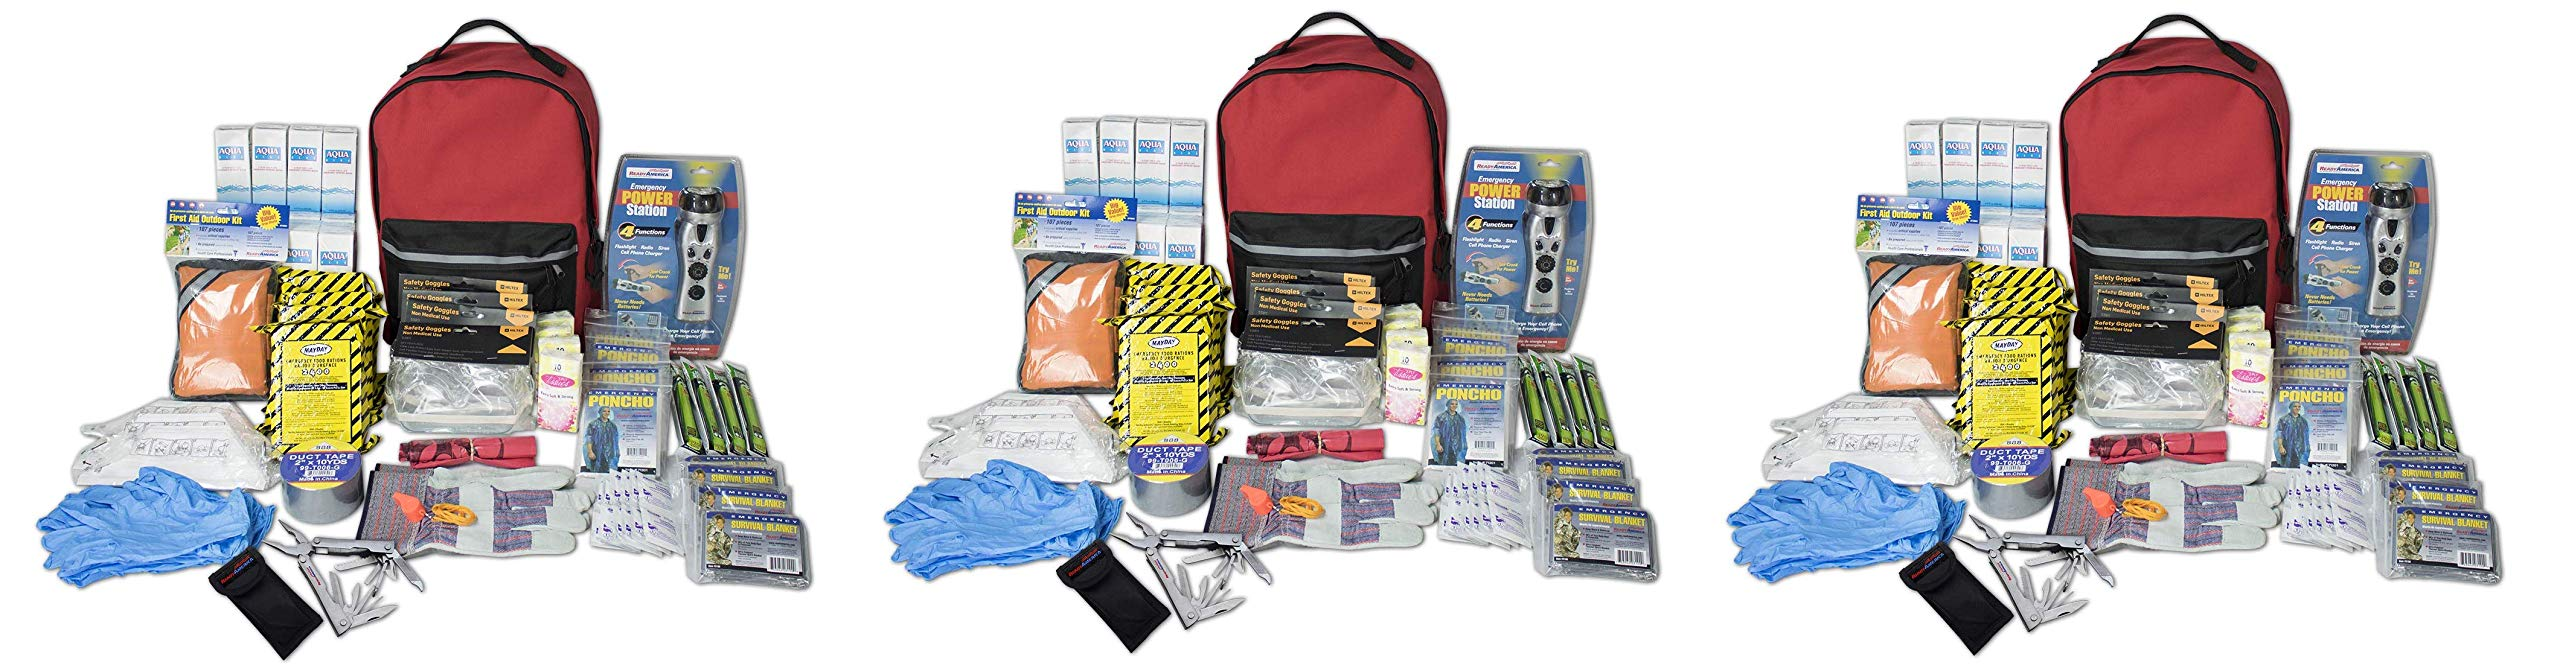 Ready America 70385 Deluxe Emergency Kit 4 Person Backpack (Thrее Расk) by Ready America